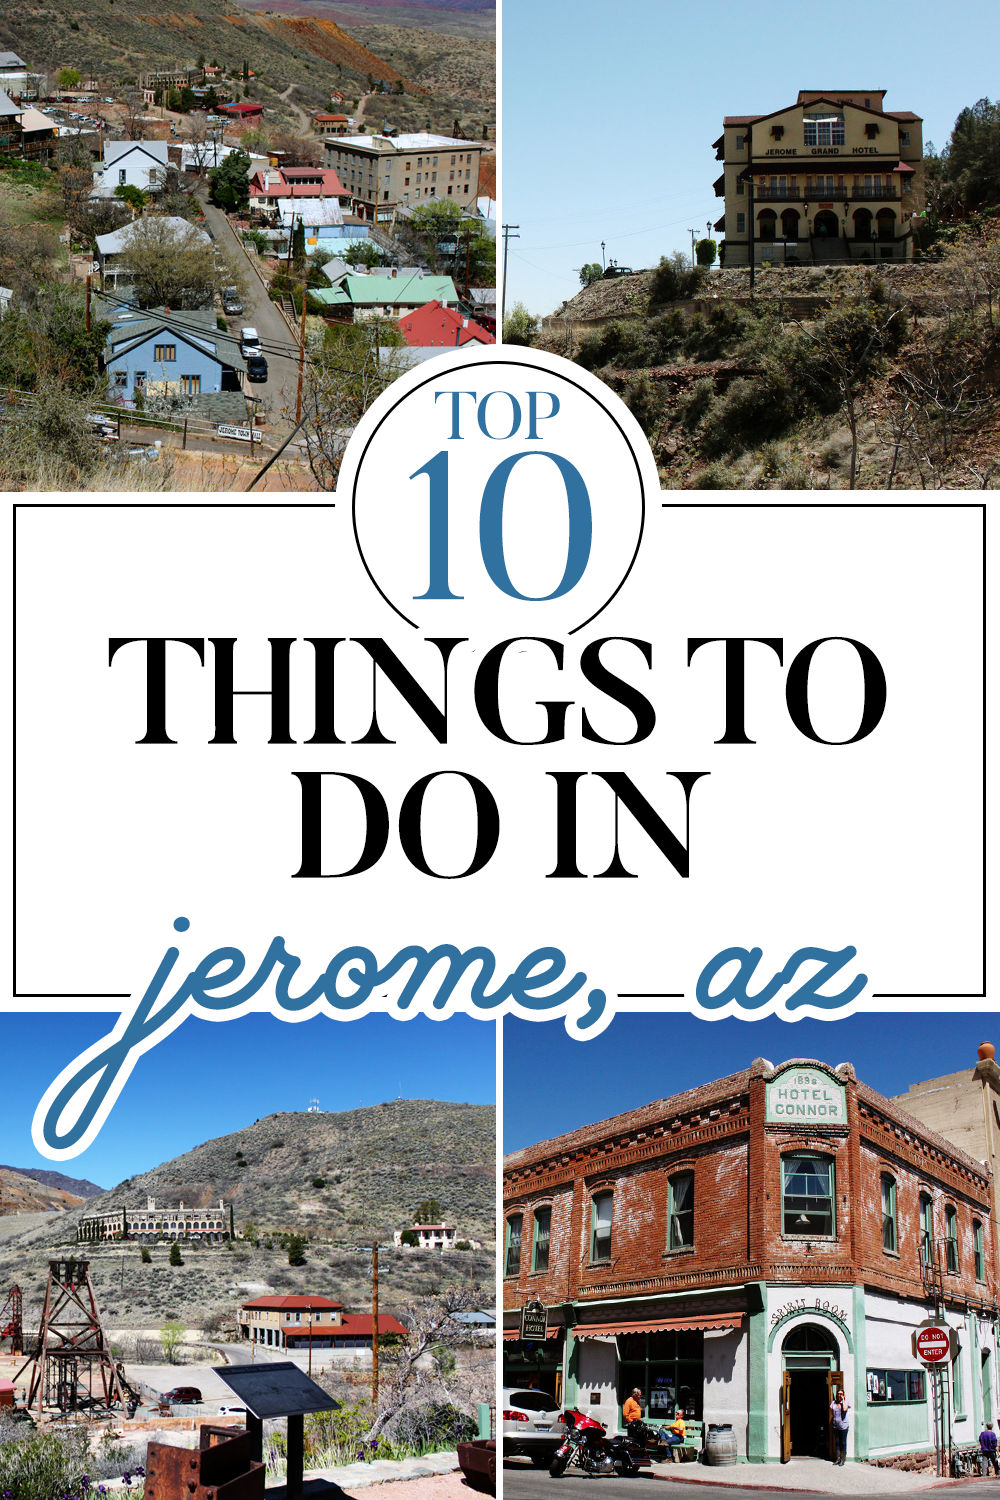 Top 10 Things To Do In Jerome, Arizona